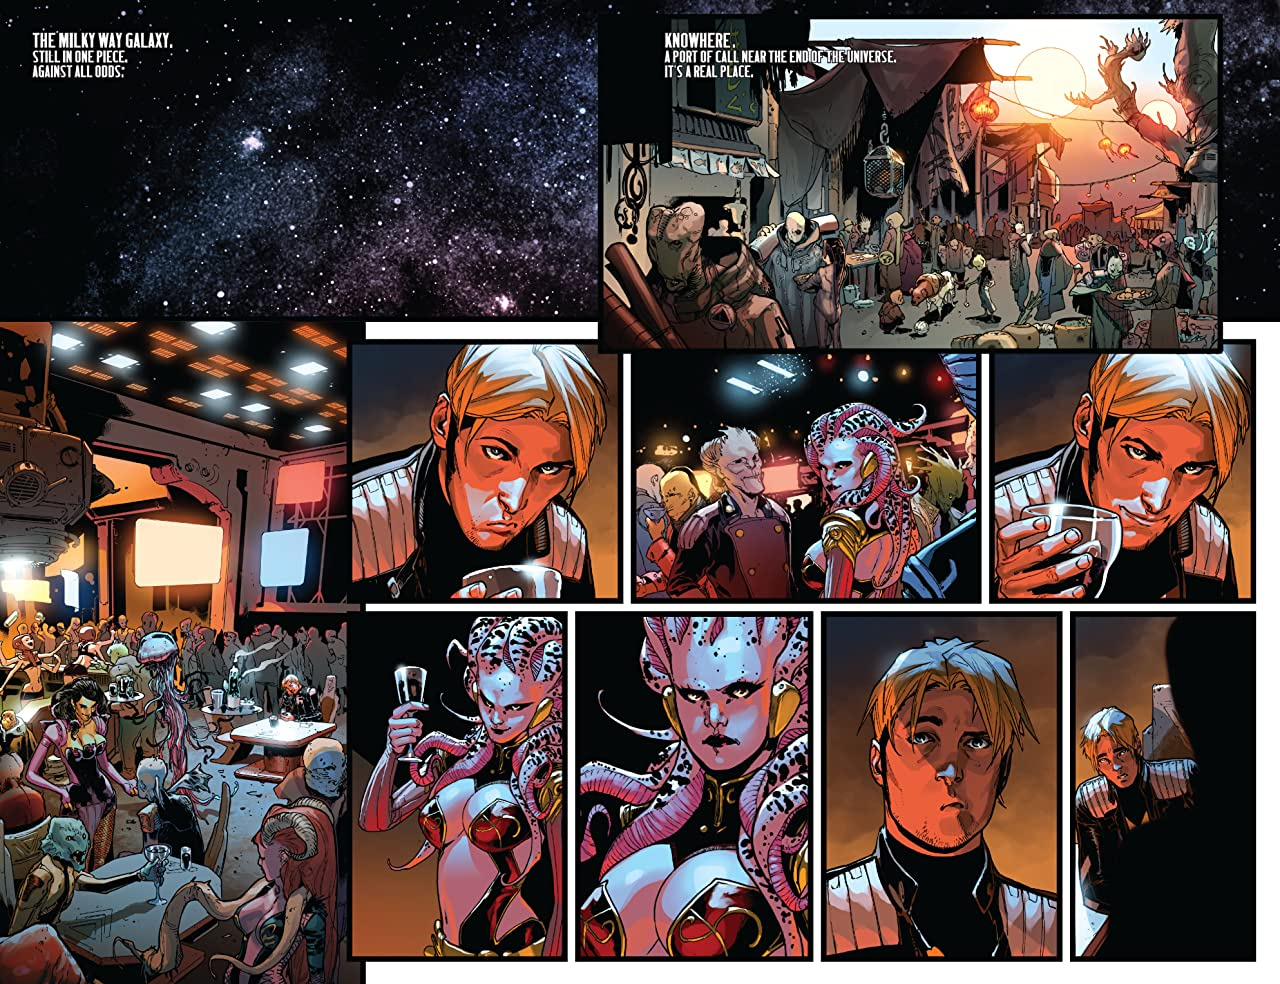 Guardians Of The Galaxy by Brian Michael Bendis Vol. 2